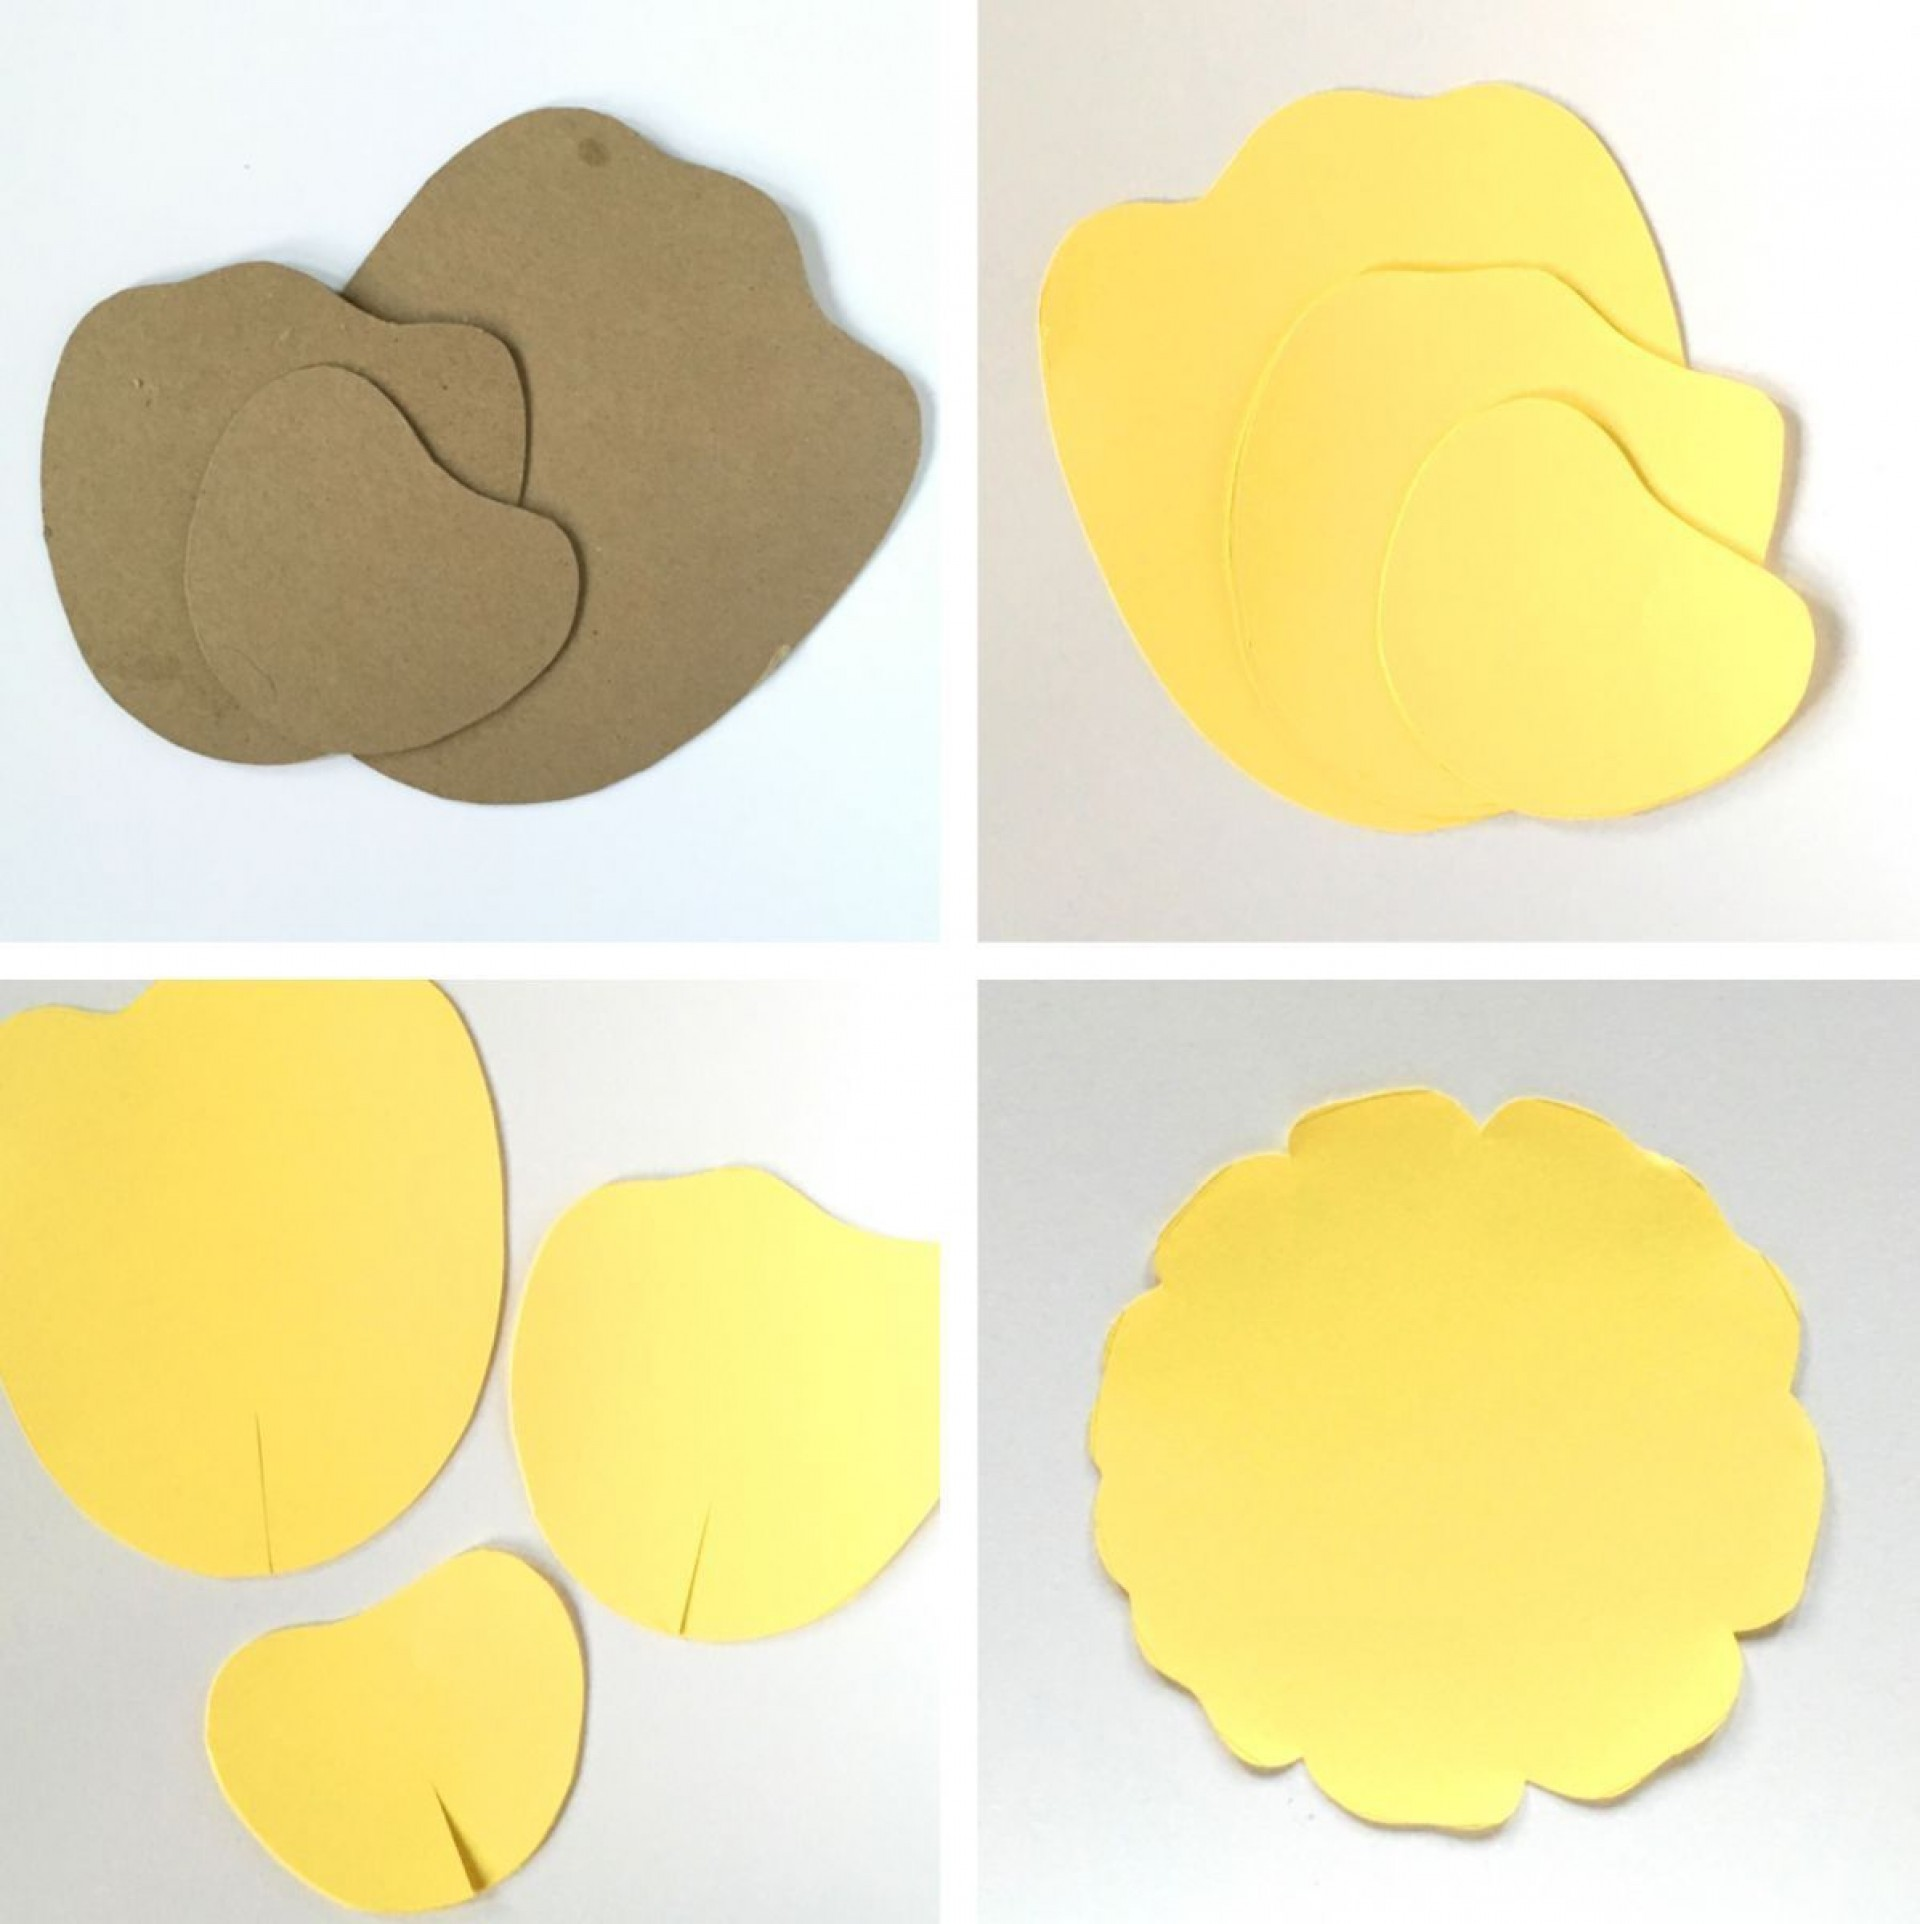 002 Magnificent Free Printable Diy Paper Flower Template Picture  Templates1920